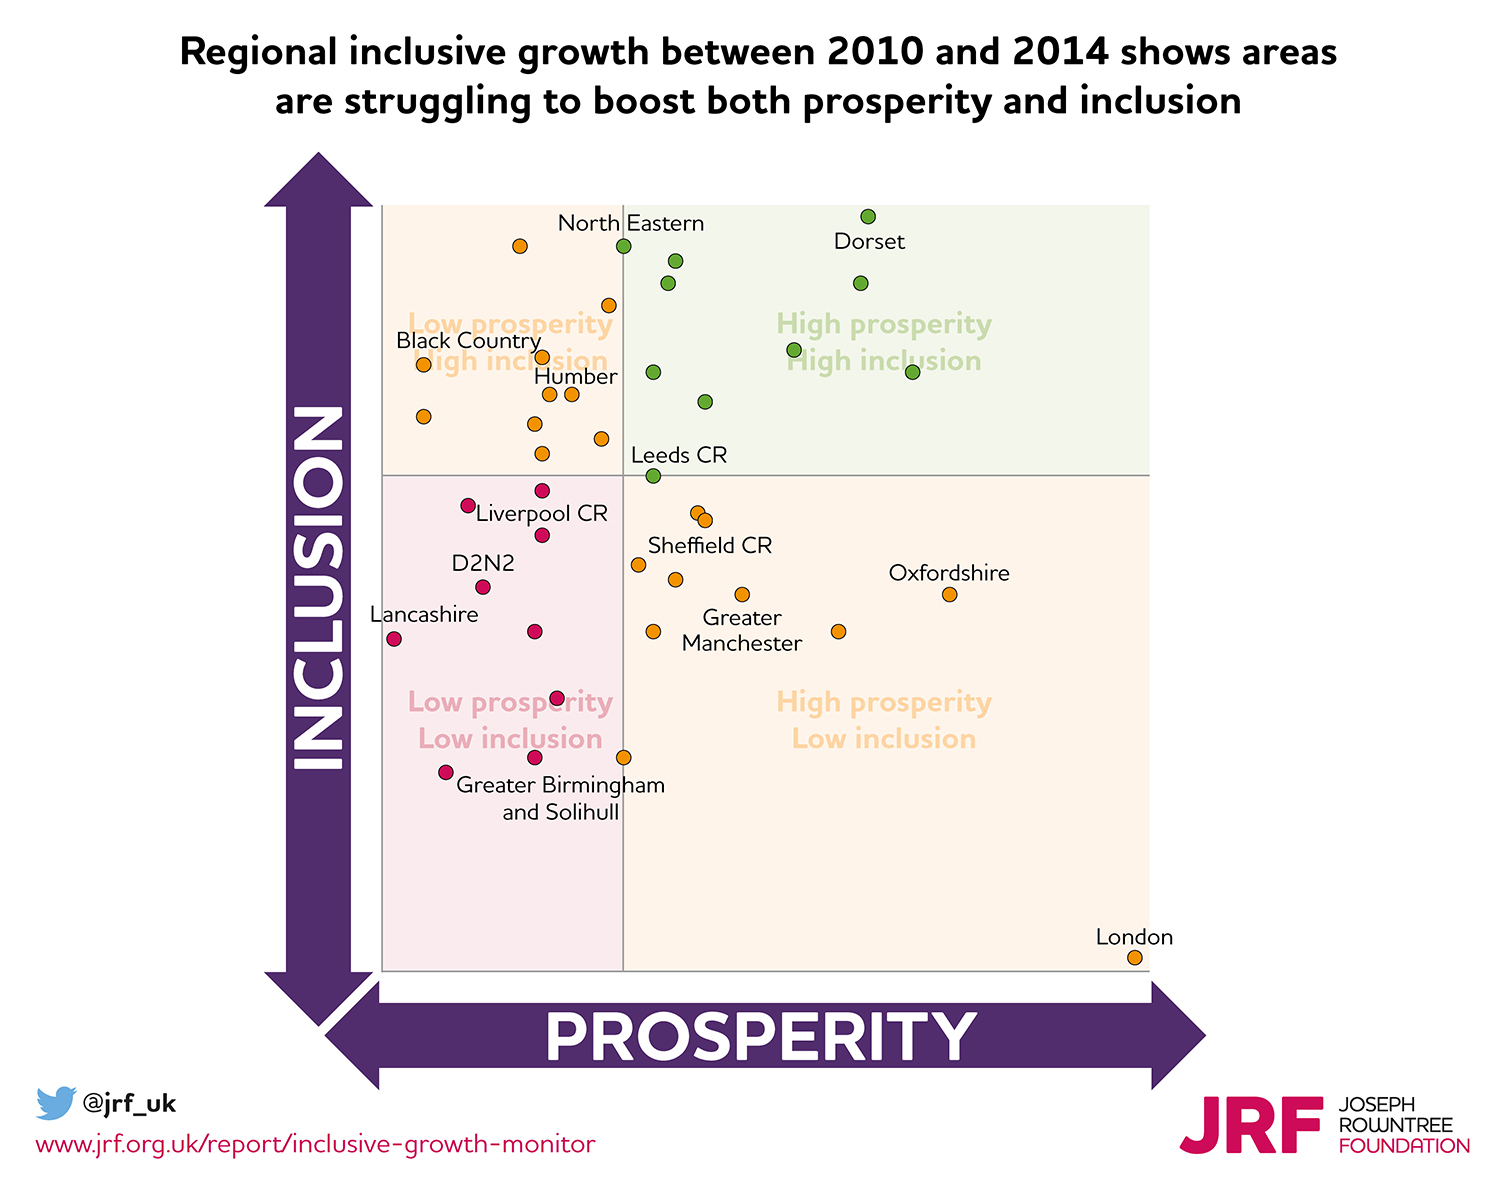 Regional inclusive growth between 2010 and 2014